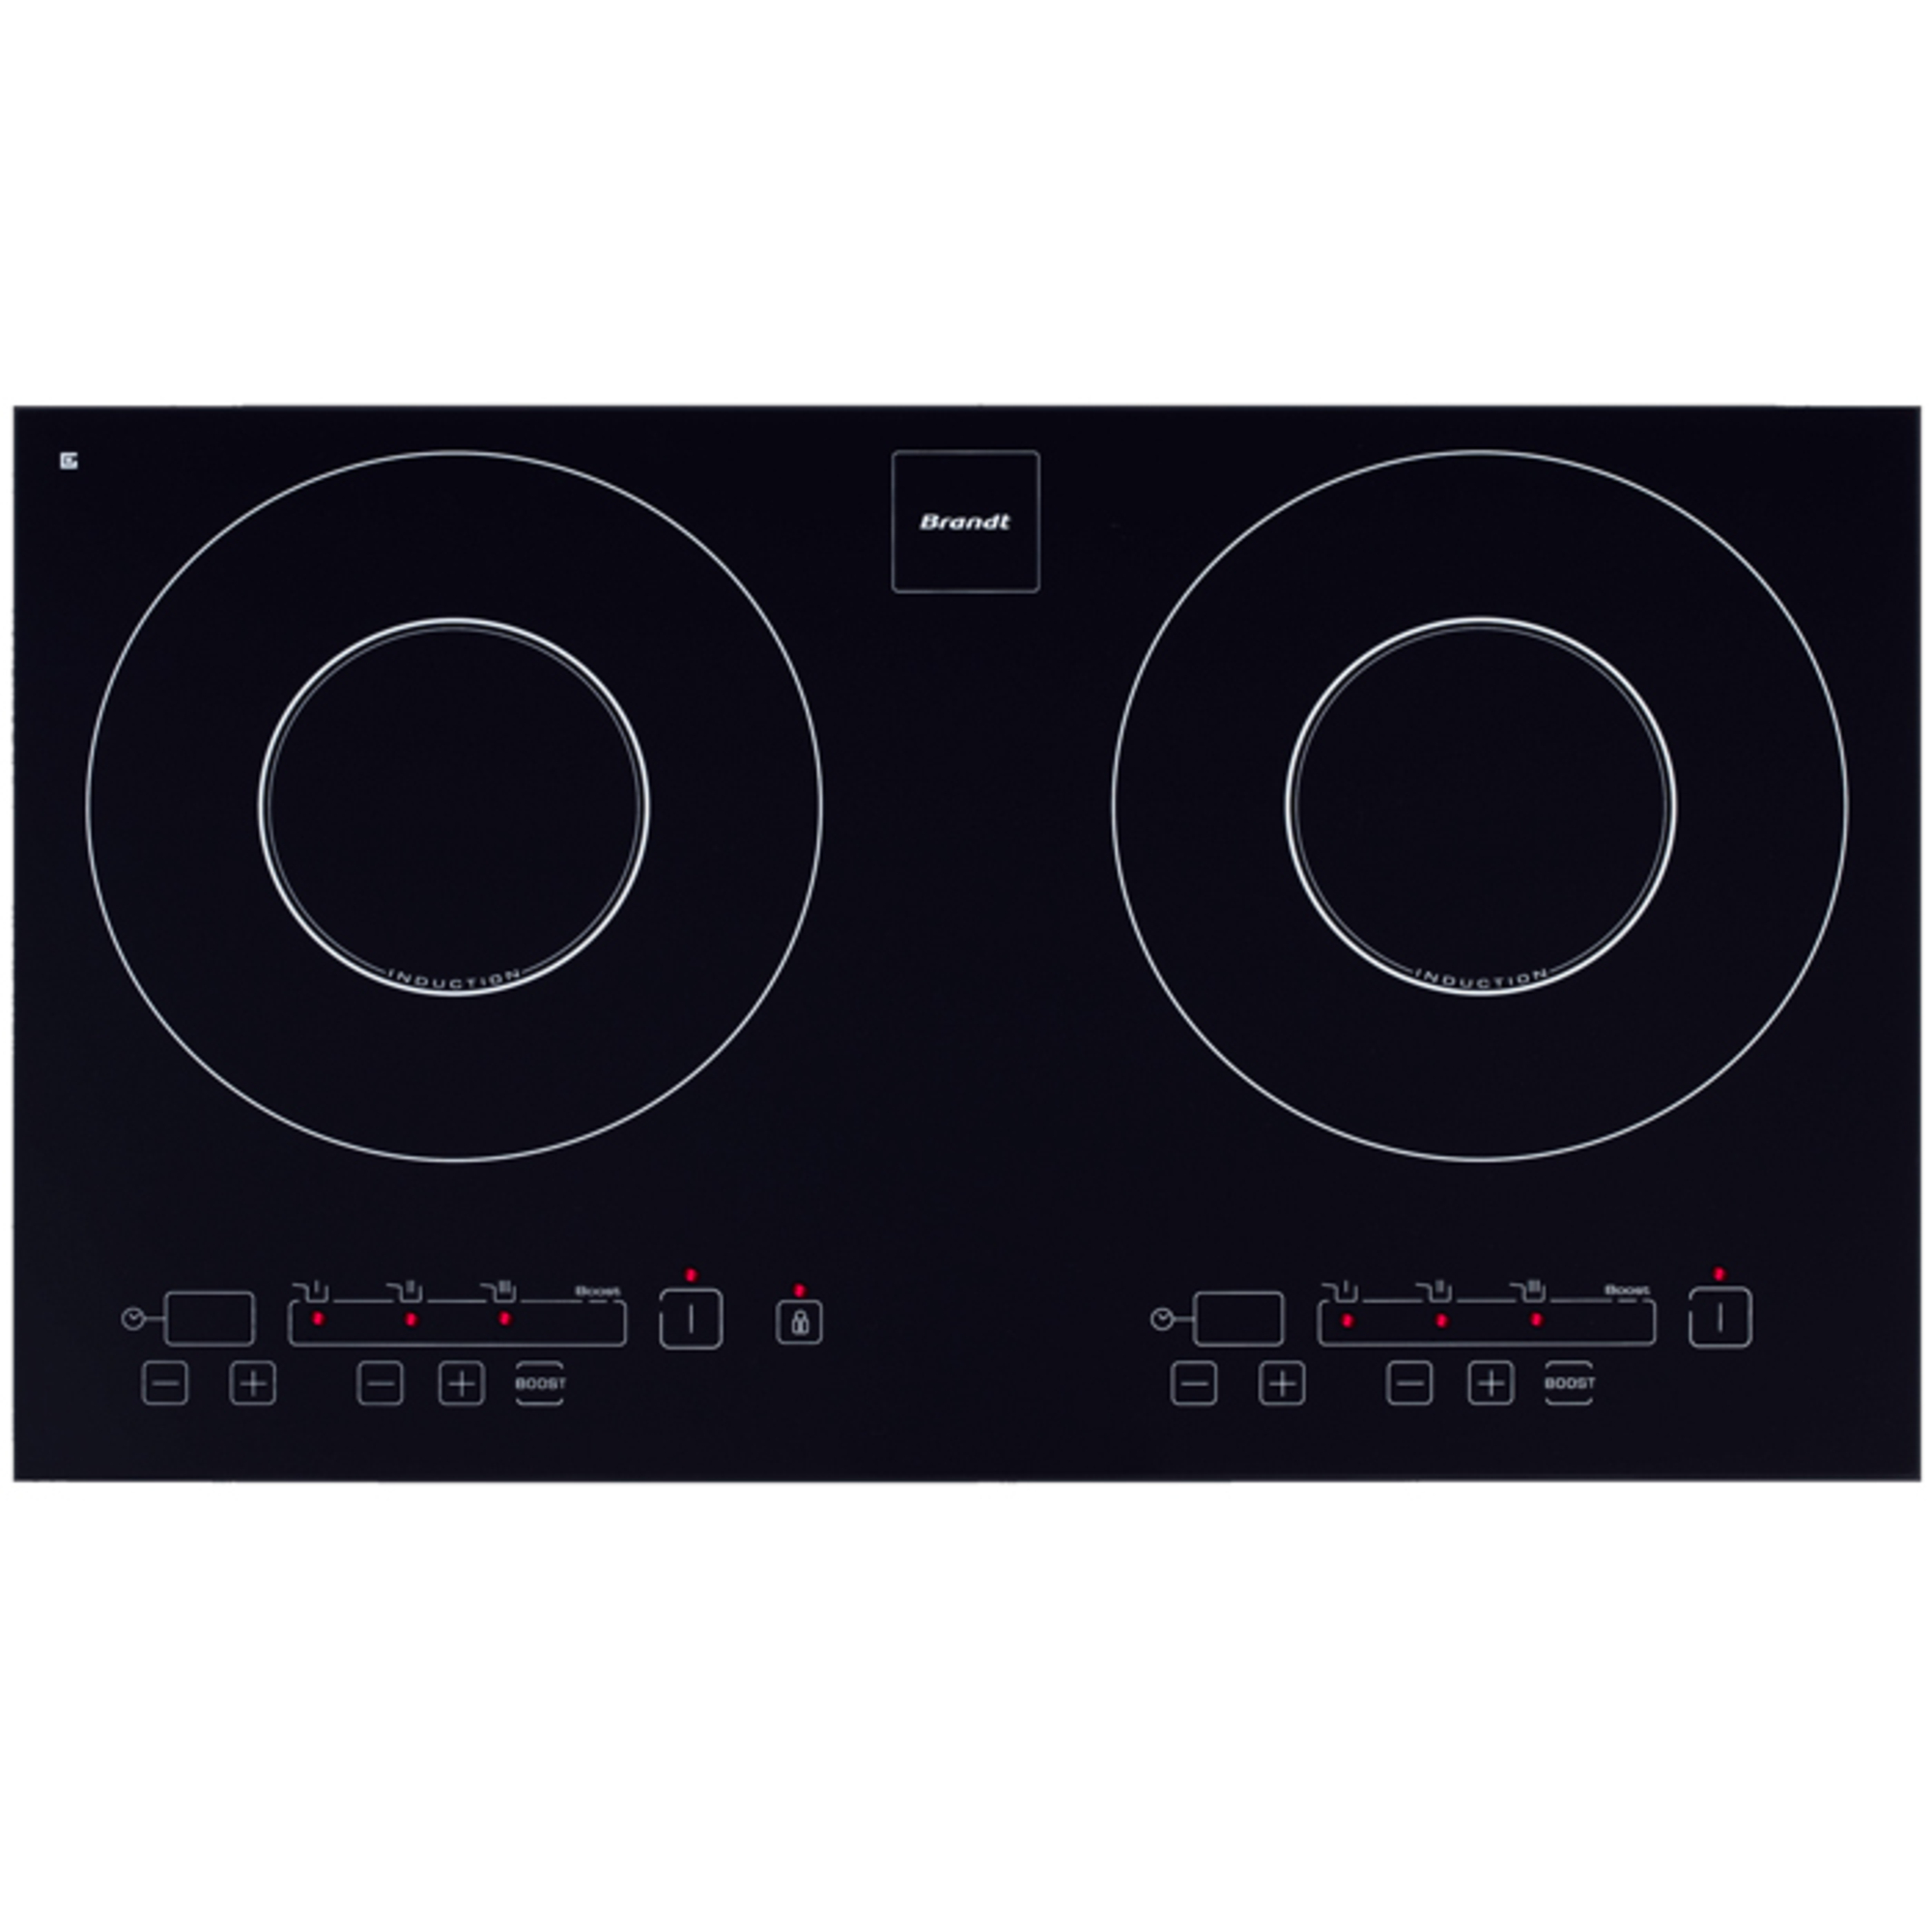 Table induction 2 foyers encastrable - Table de cuisson induction 2 foyers a poser ...